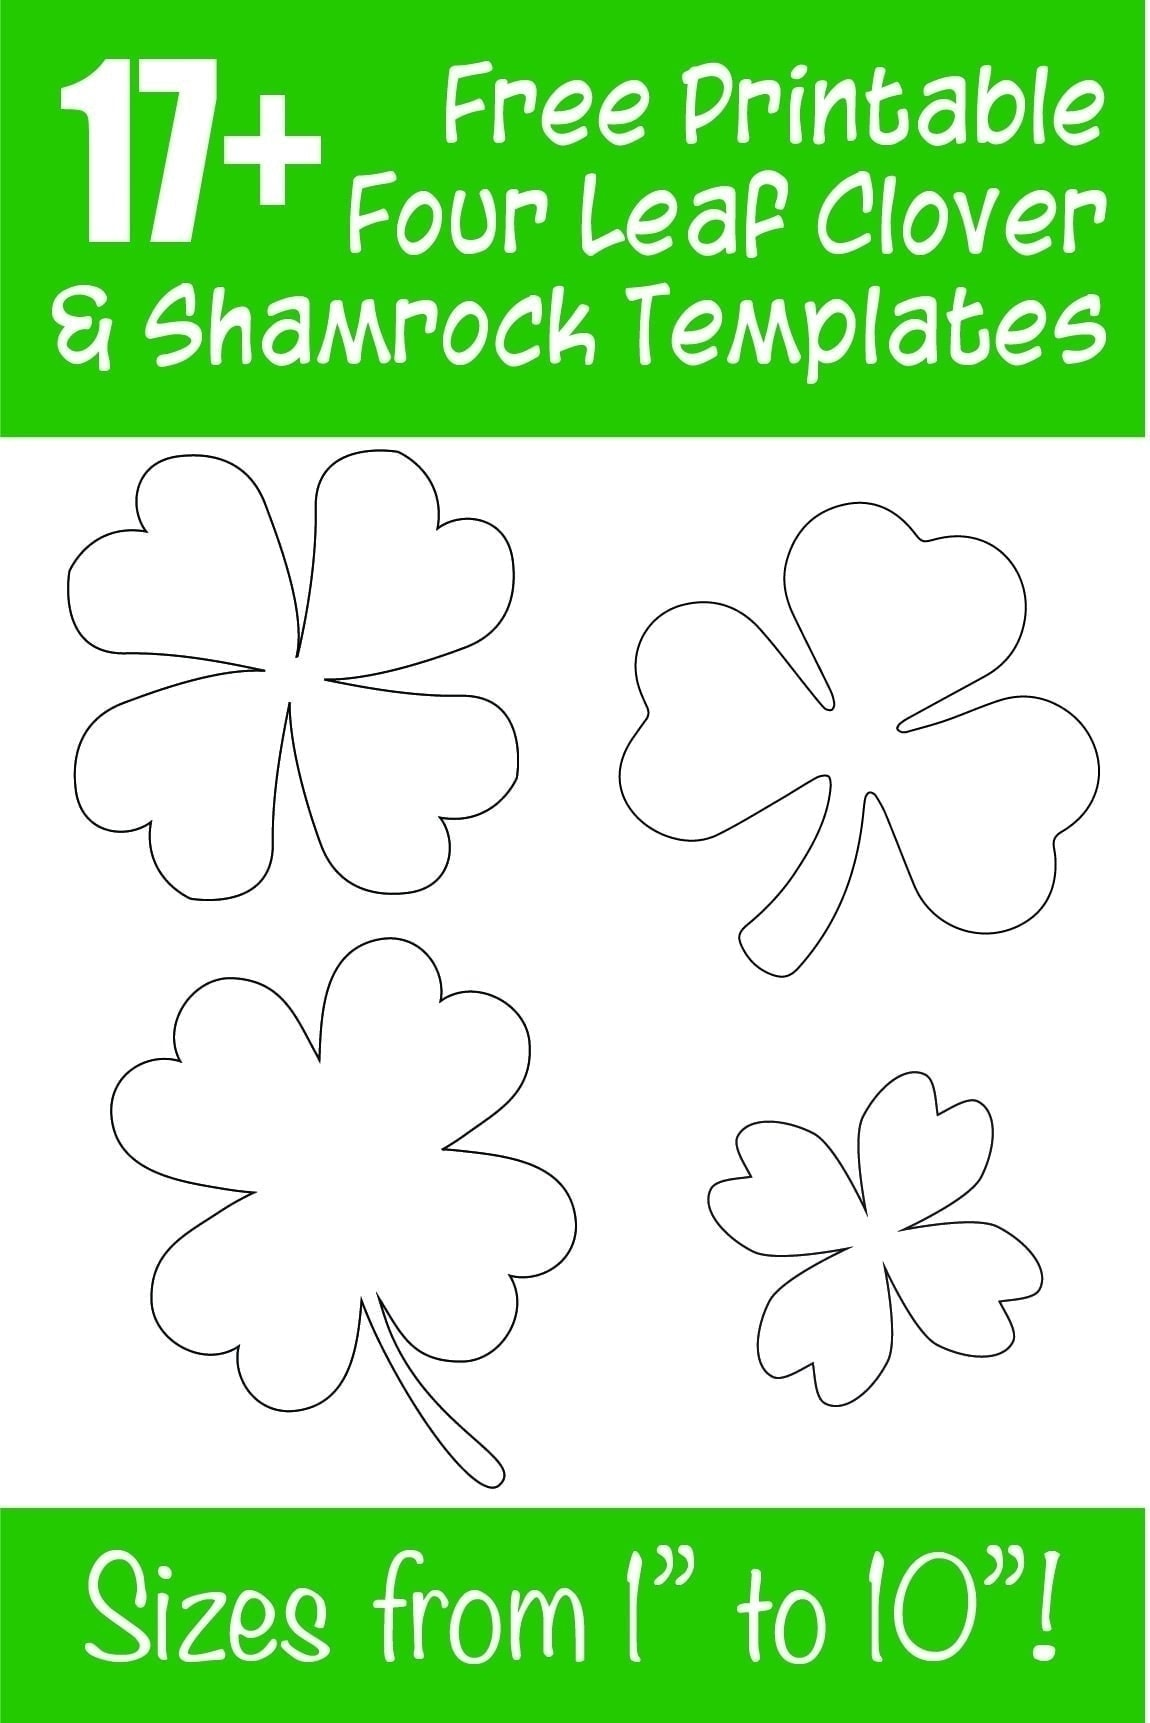 """Grab these free printable shamrock cutouts & four leaf shamrock template printables for your St. Patrick's Day crafts! 17+ free printable shamrock templates from small to huge! Sizes range from 1"""" up to 10""""!"""